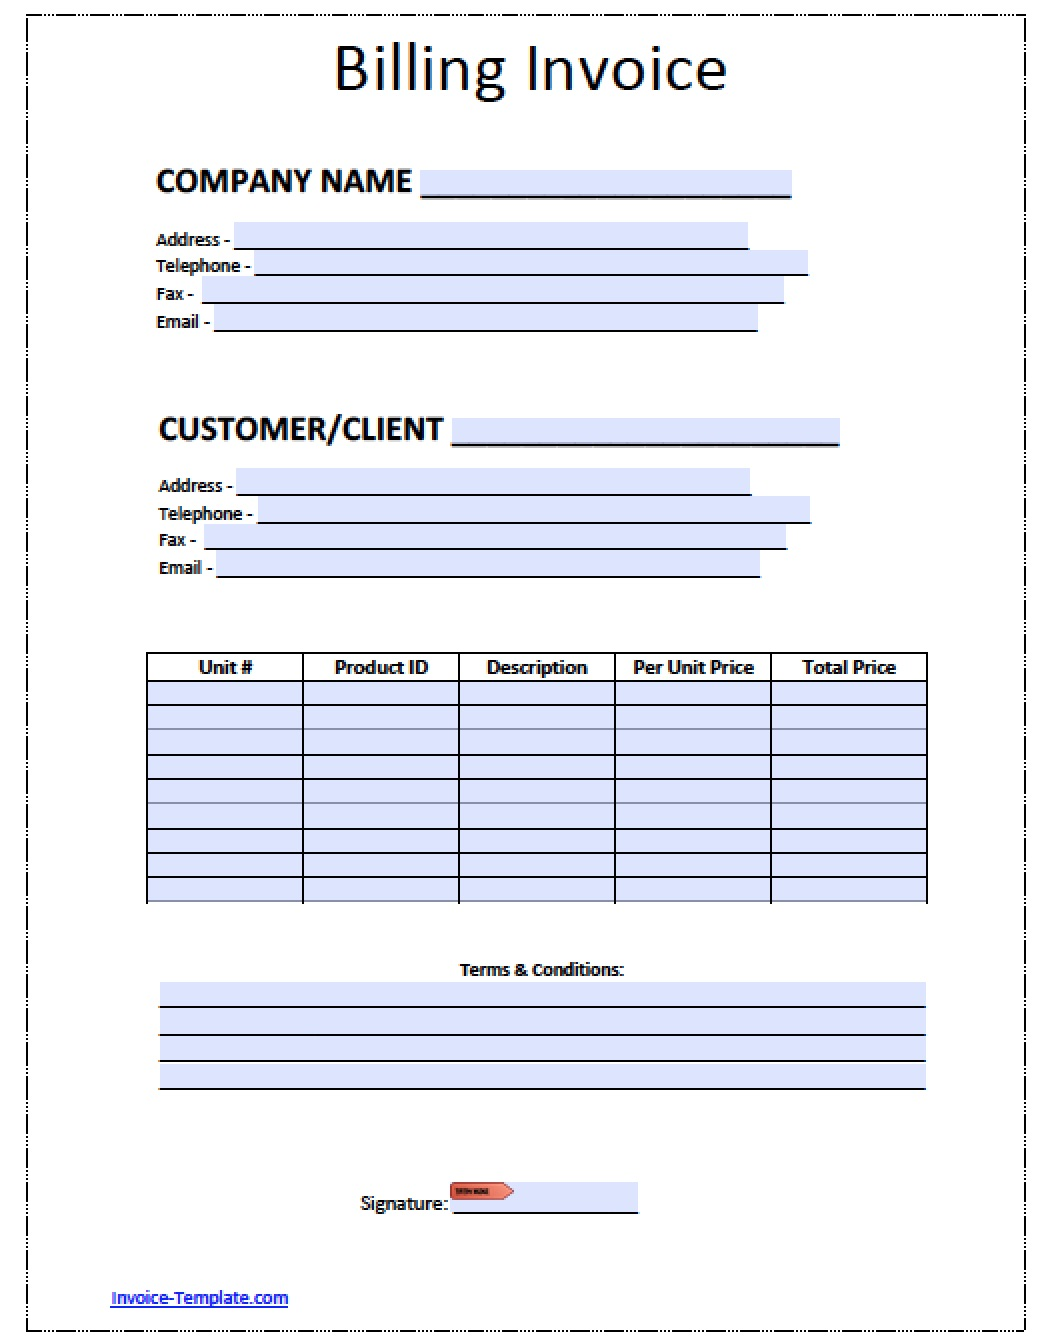 Free Billing Invoice Template Excel PDF Word Doc - Free blank invoice template online clothing stores for women